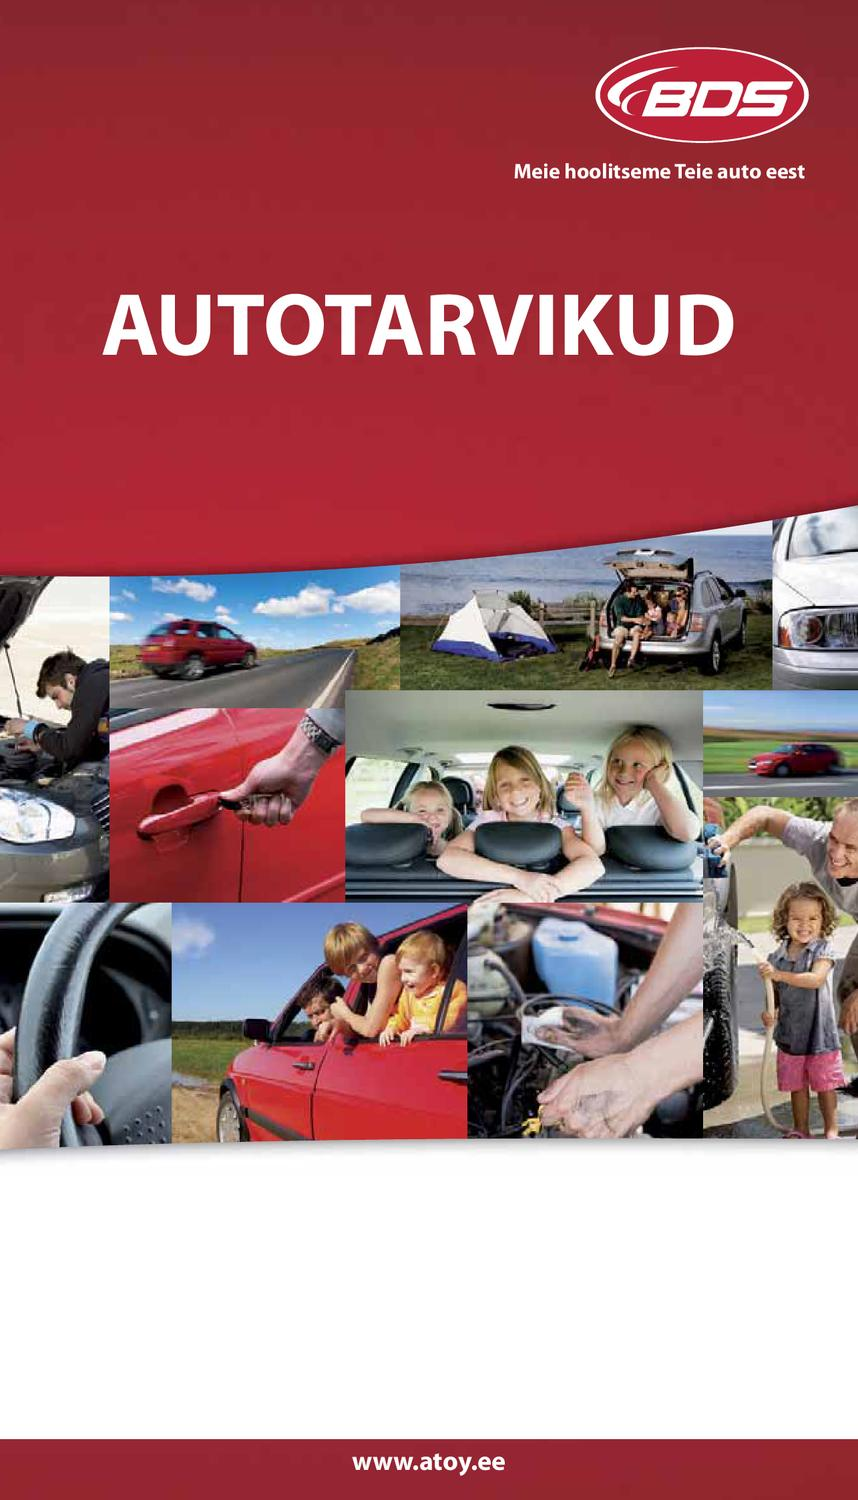 7d5b2cab6fc BDS Autotarvikud by Atoy Automotive OÜ - issuu